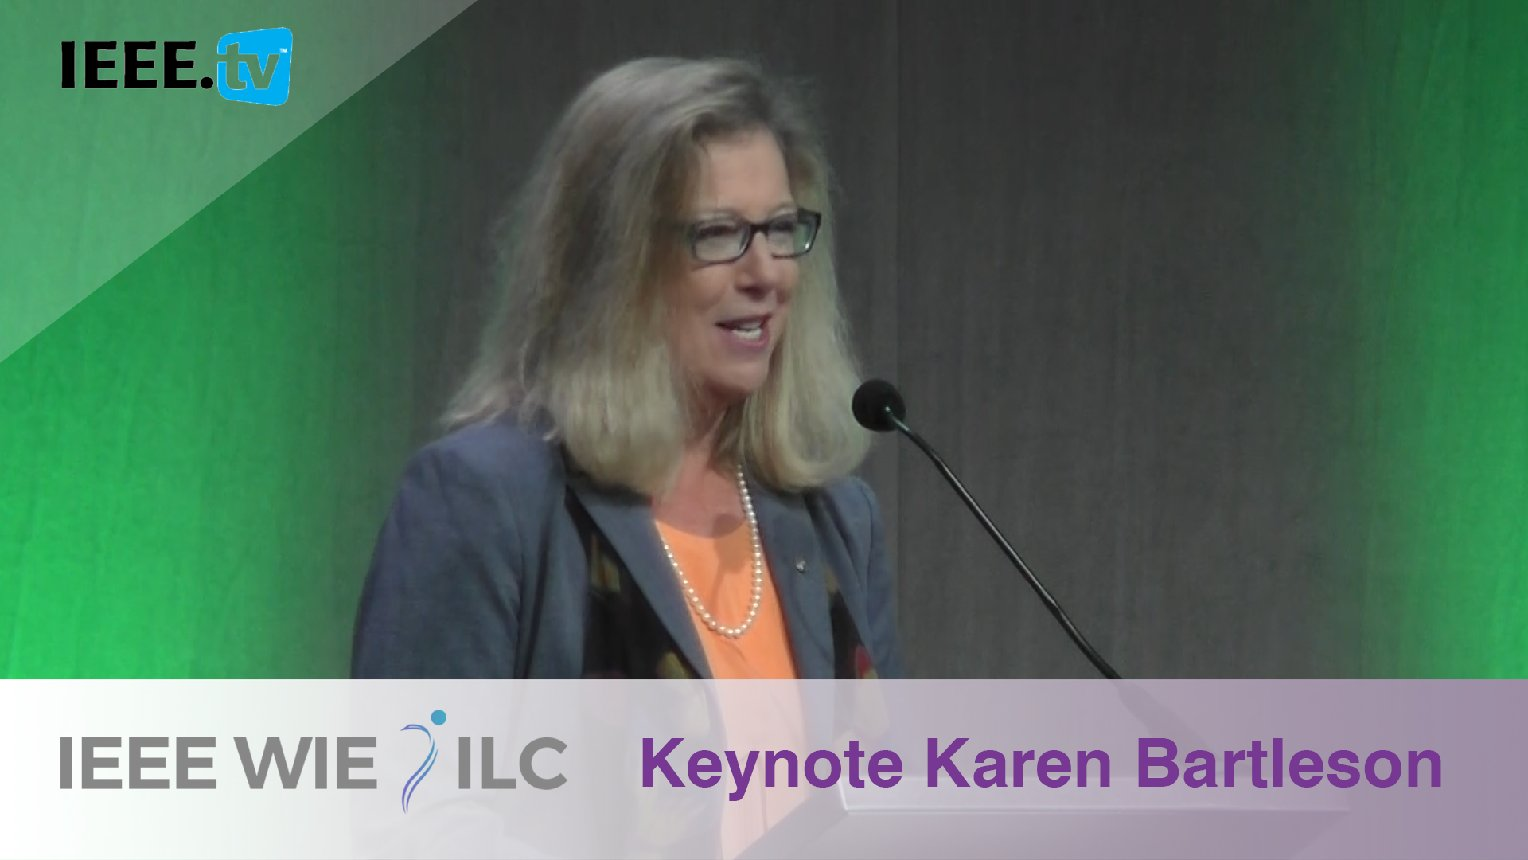 Welcome and Introduction with Karen Bartleson - IEEE WIE ILC 2017